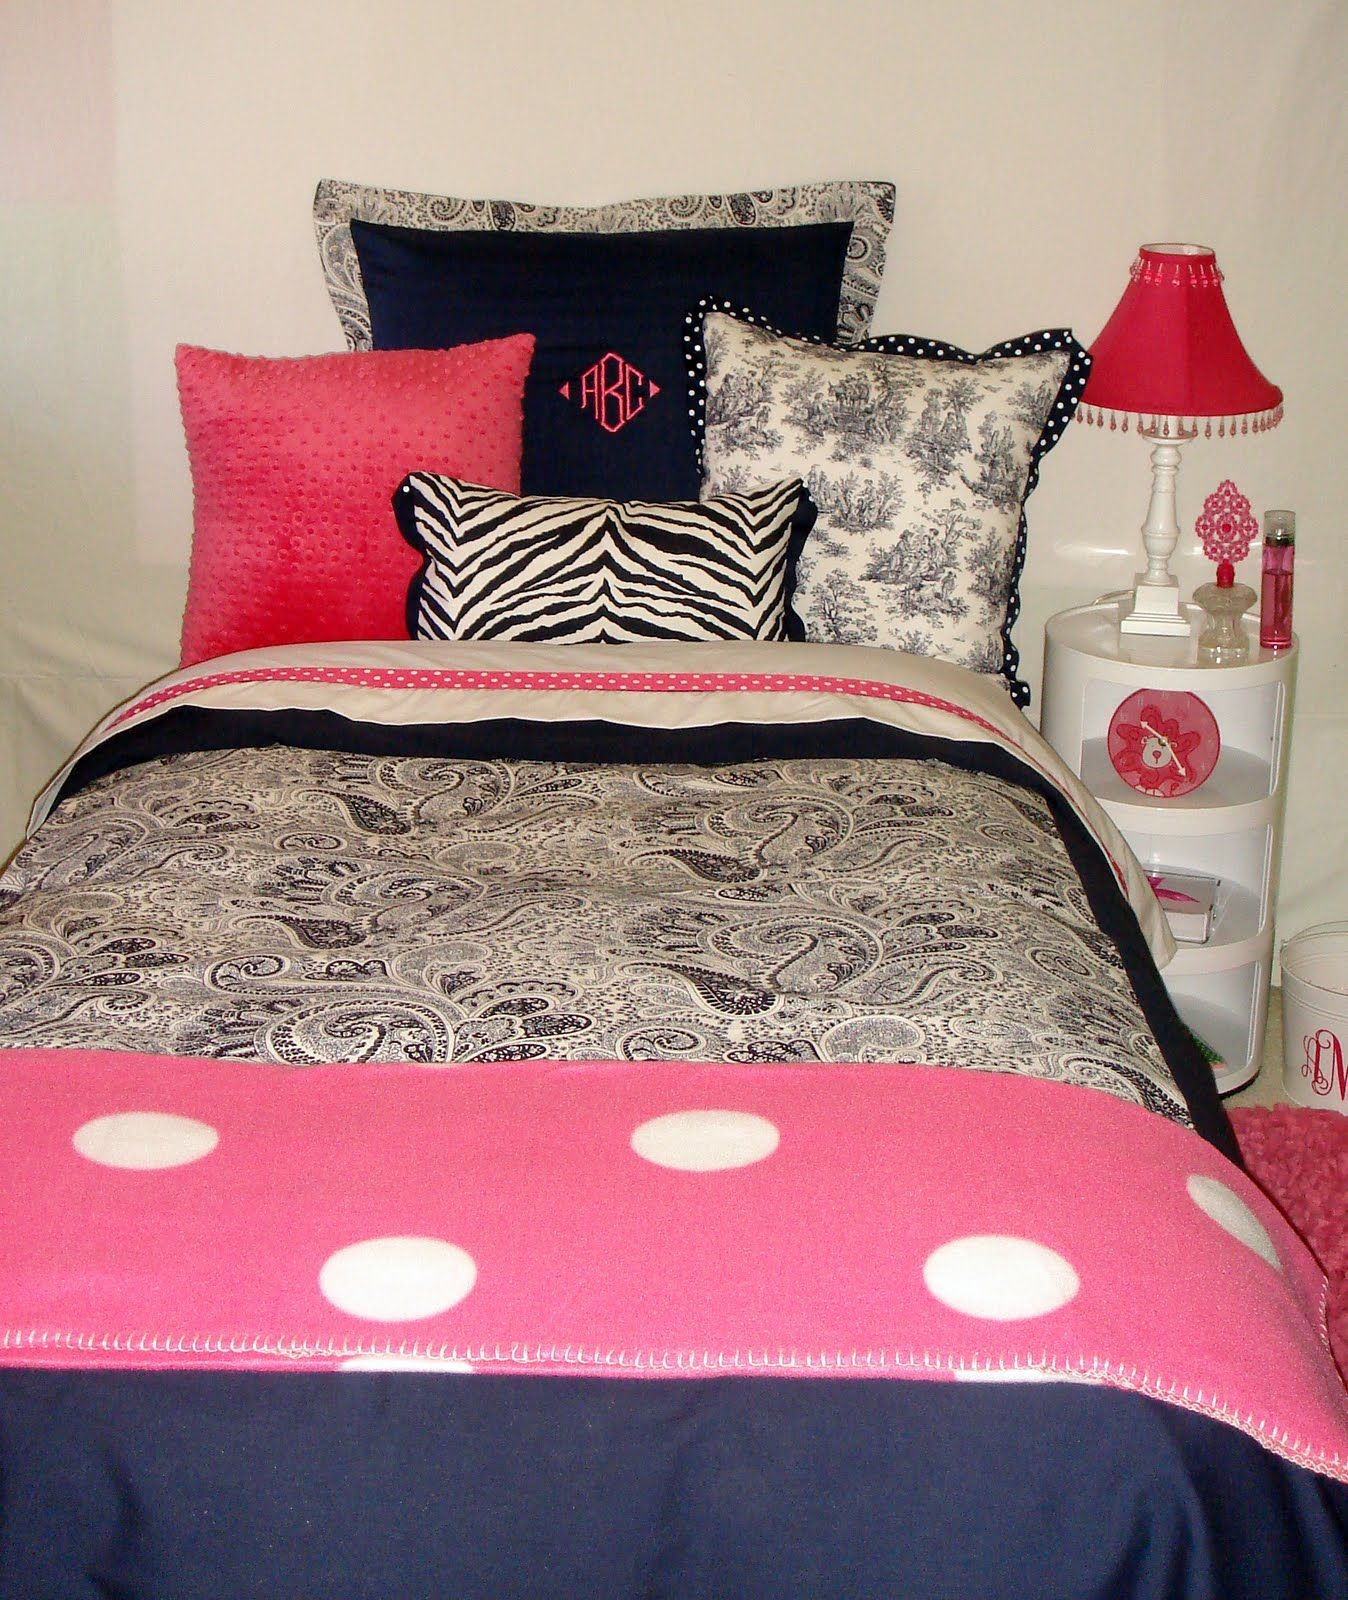 College Dorm Room Bedding For More Awesom Girls Dorm Room Ideas Check Out Homeizy Com